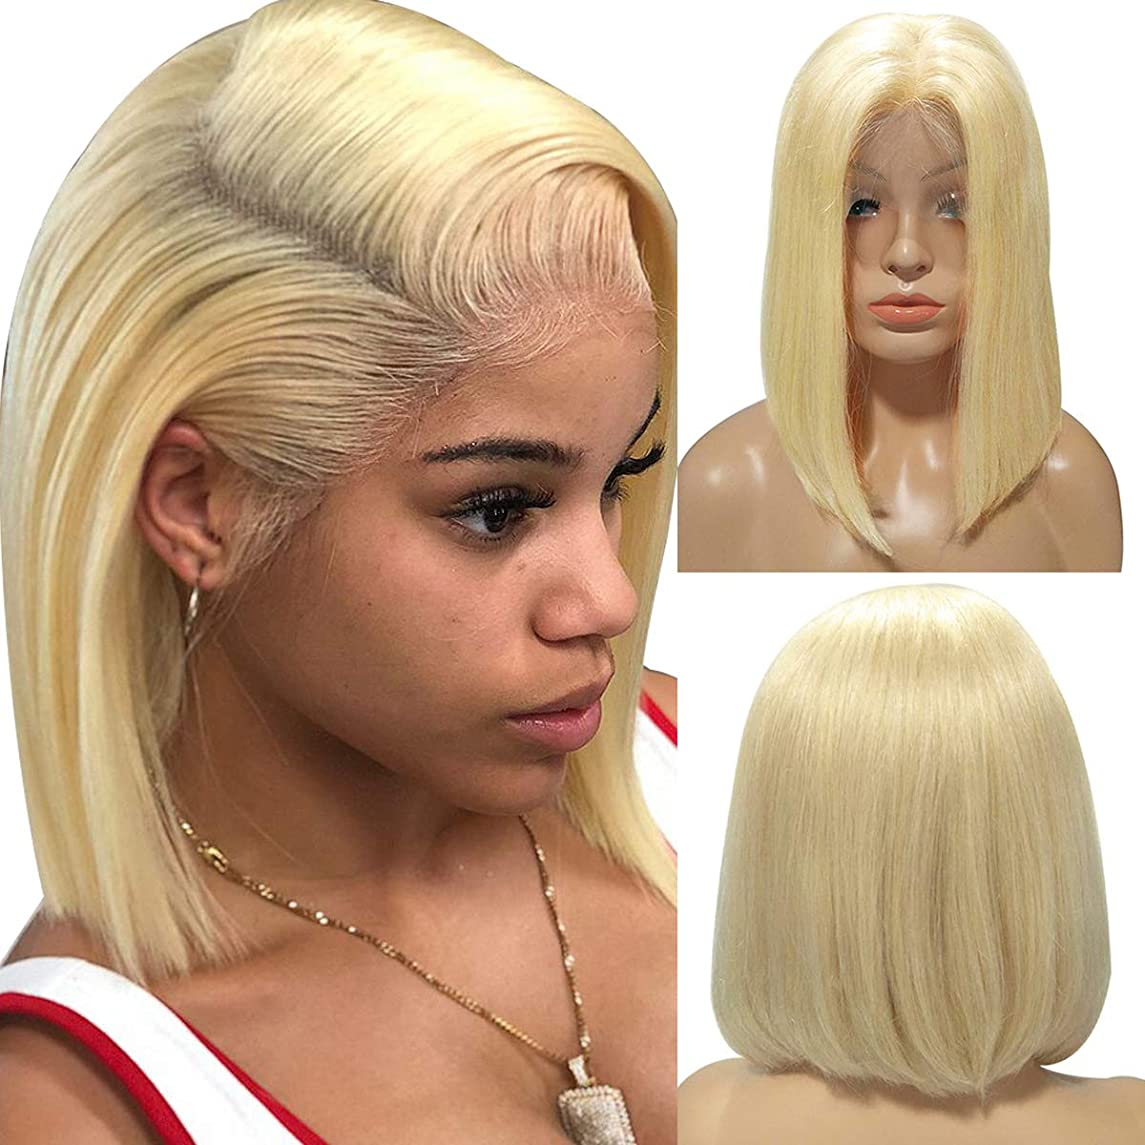 Human Hair Blonde Lace Front Wig Frontal Melting 613 Short Bob Lace Wigs Bleached Knots Brazilian Straight 13x4 Lace Wigs for Black Women 150% Density Pre Plucked 12